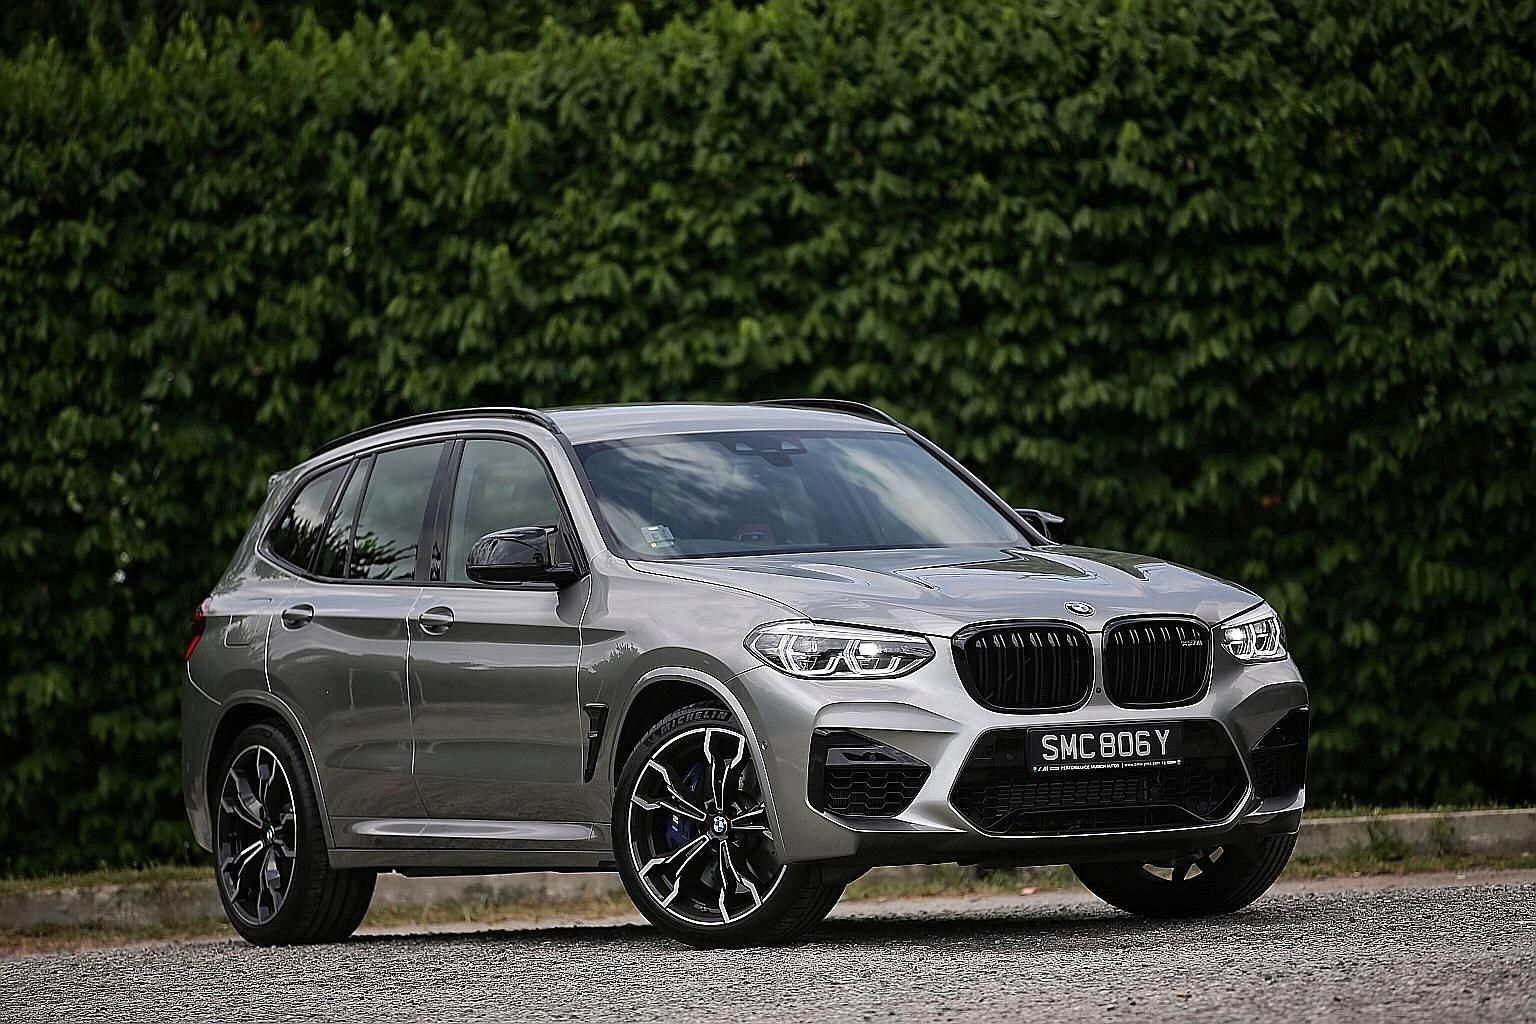 The BMW X3M Competition delivers 510hp and 600Nm of torque. Even in Efficient mode, it is sportier than some sports cars in Sport mode.